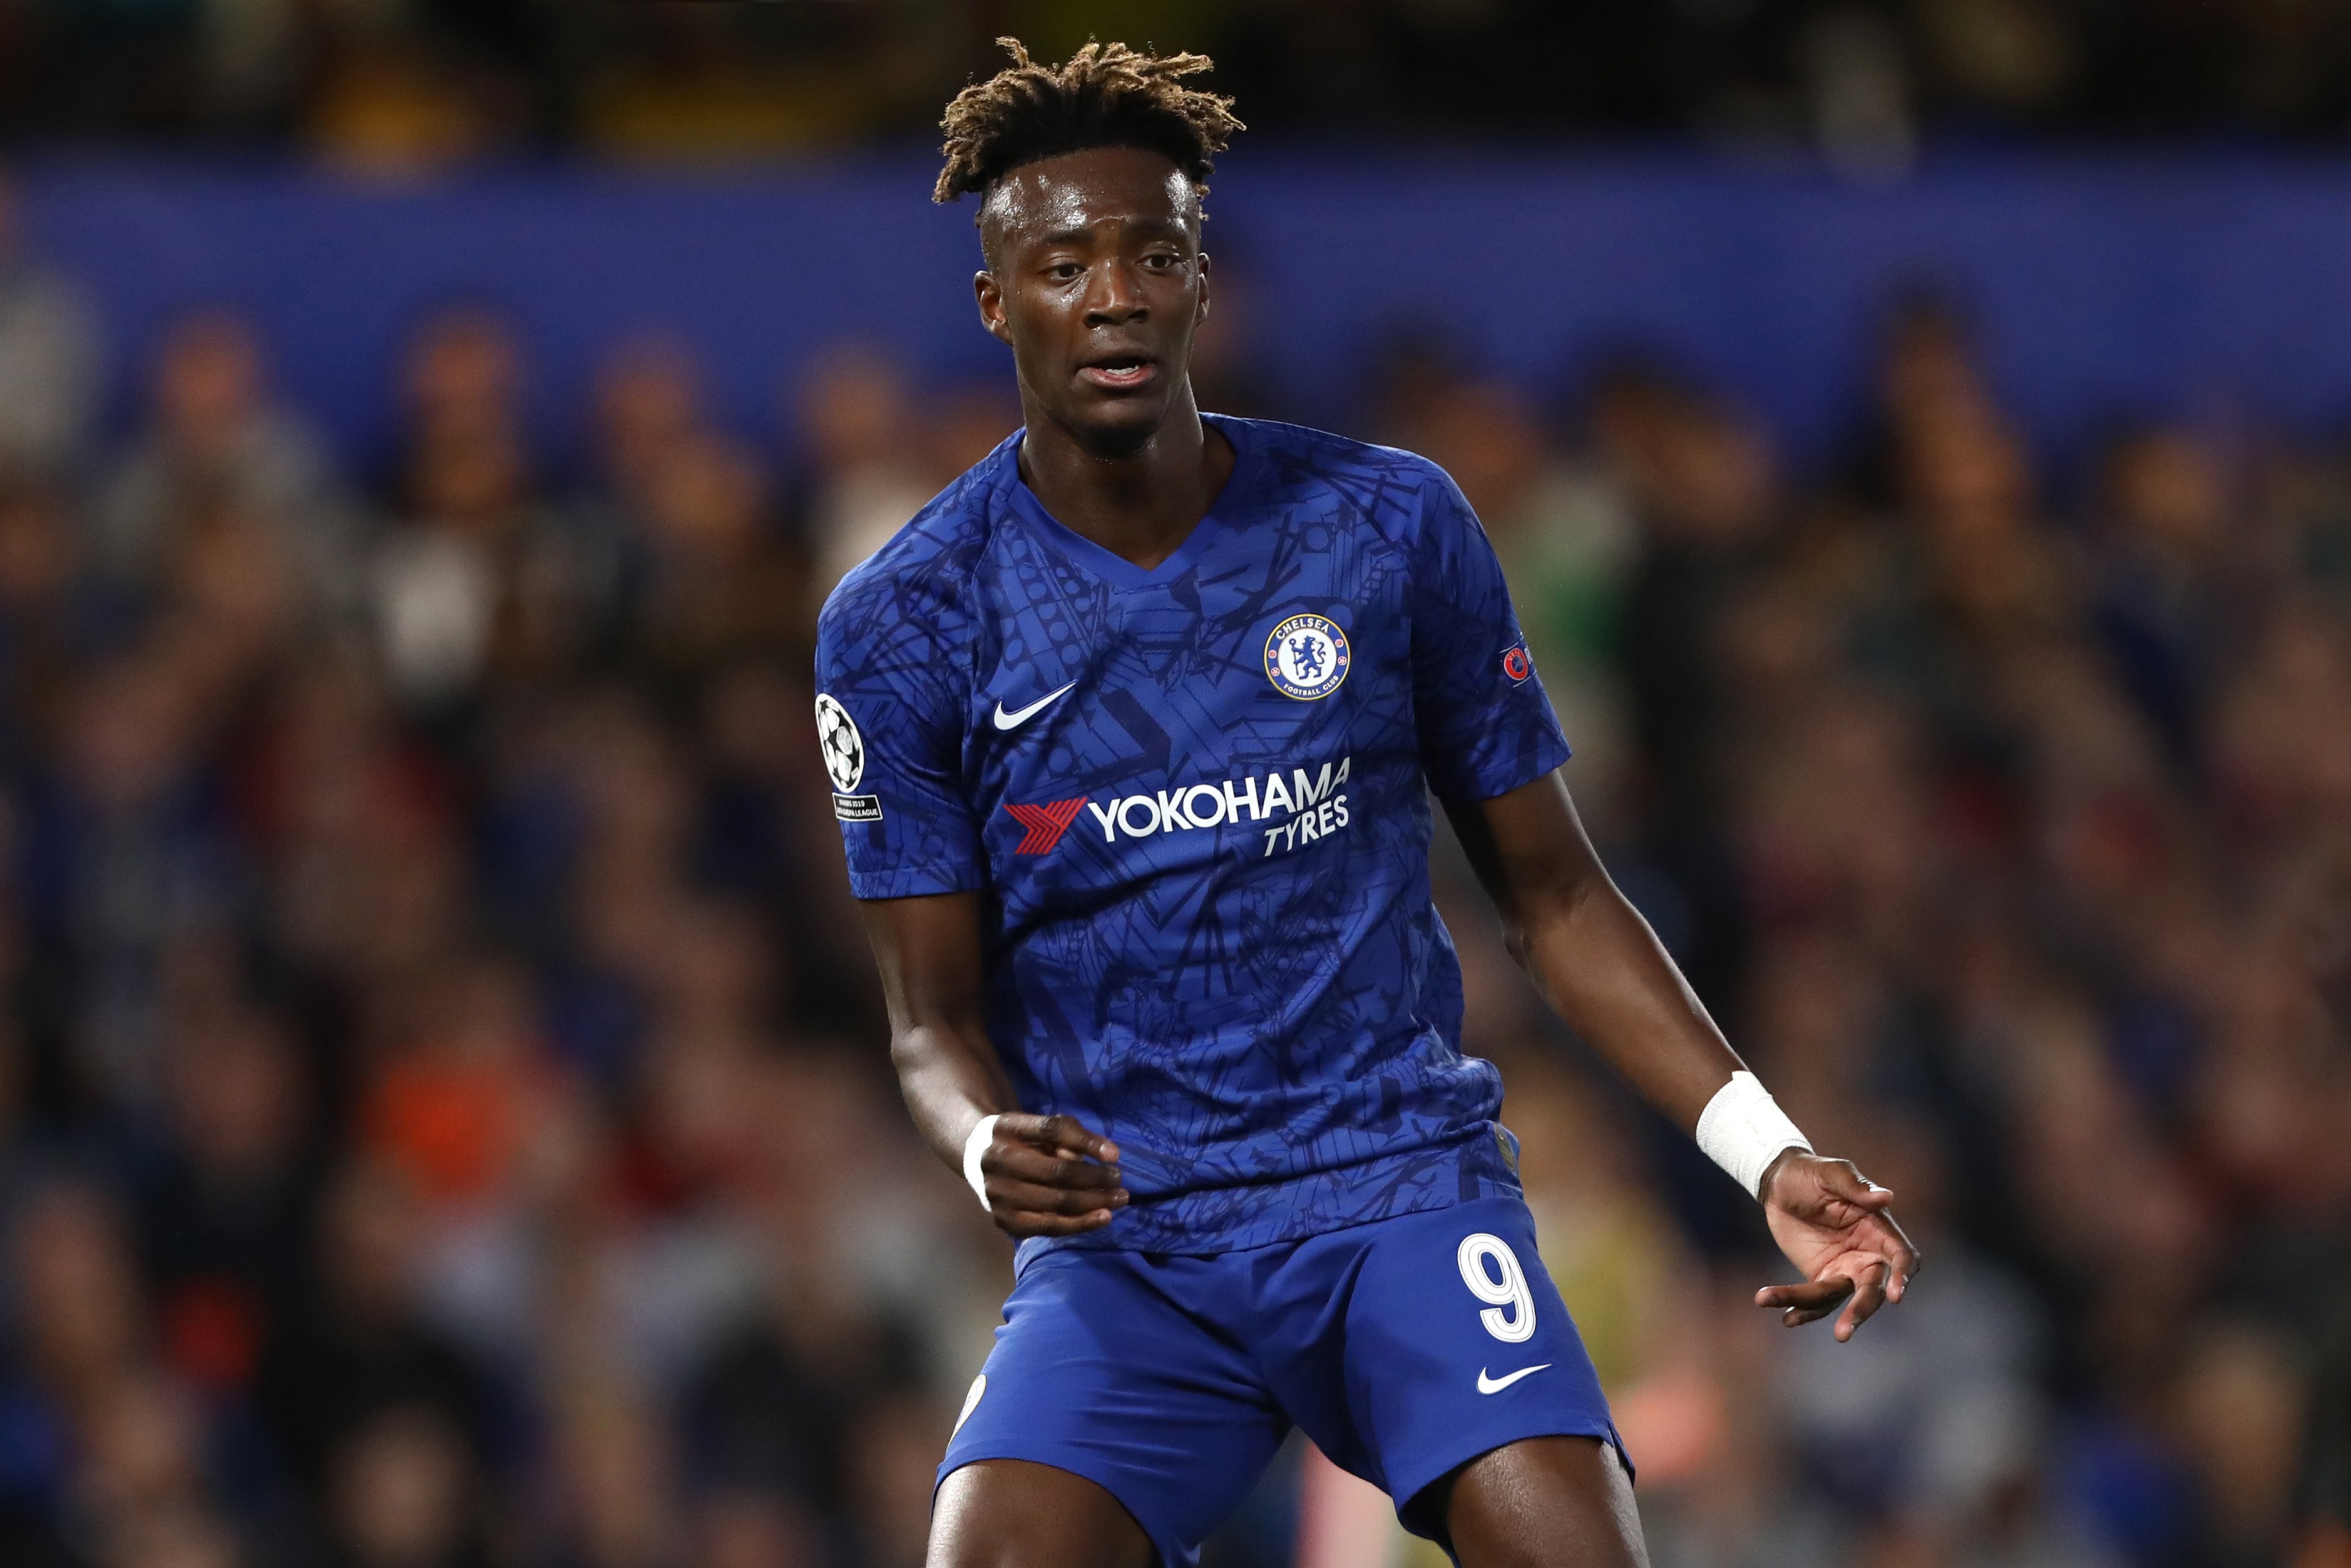 Tammy Abraham in the centre of the frame wearing Chelsea's home kit with out of focus shot of crowd in the background